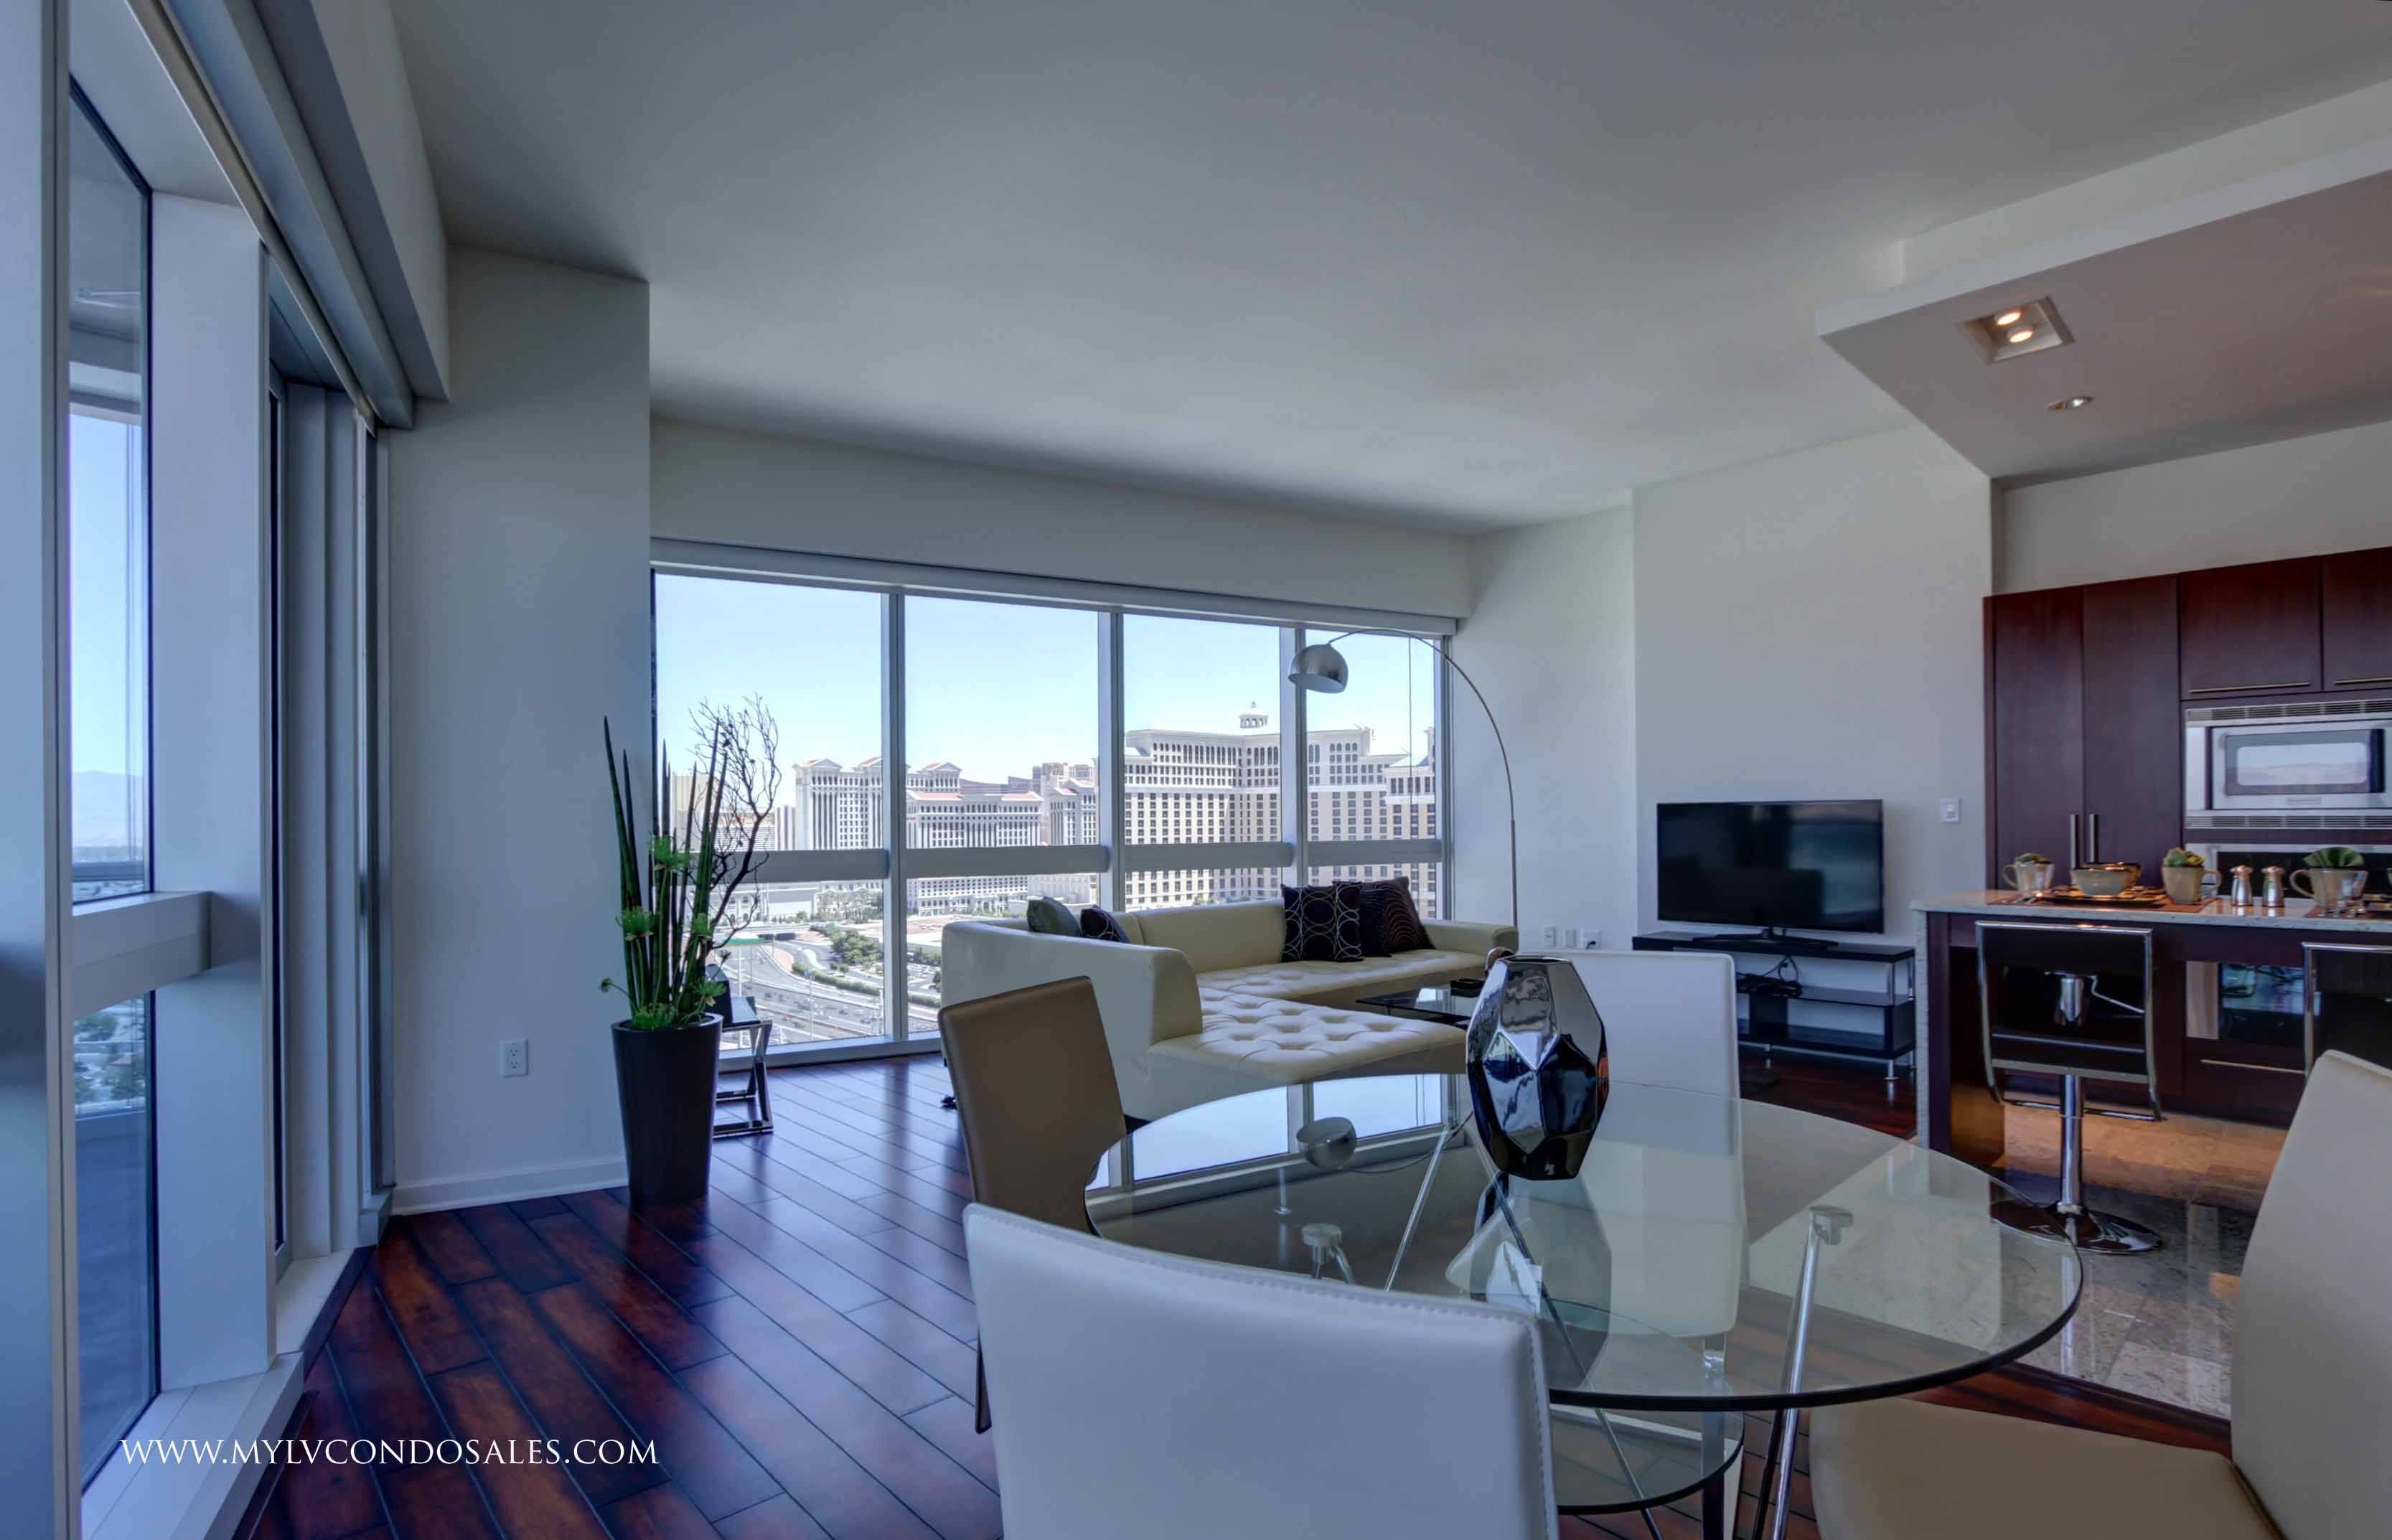 allure las vegas – las vegas condos for sale